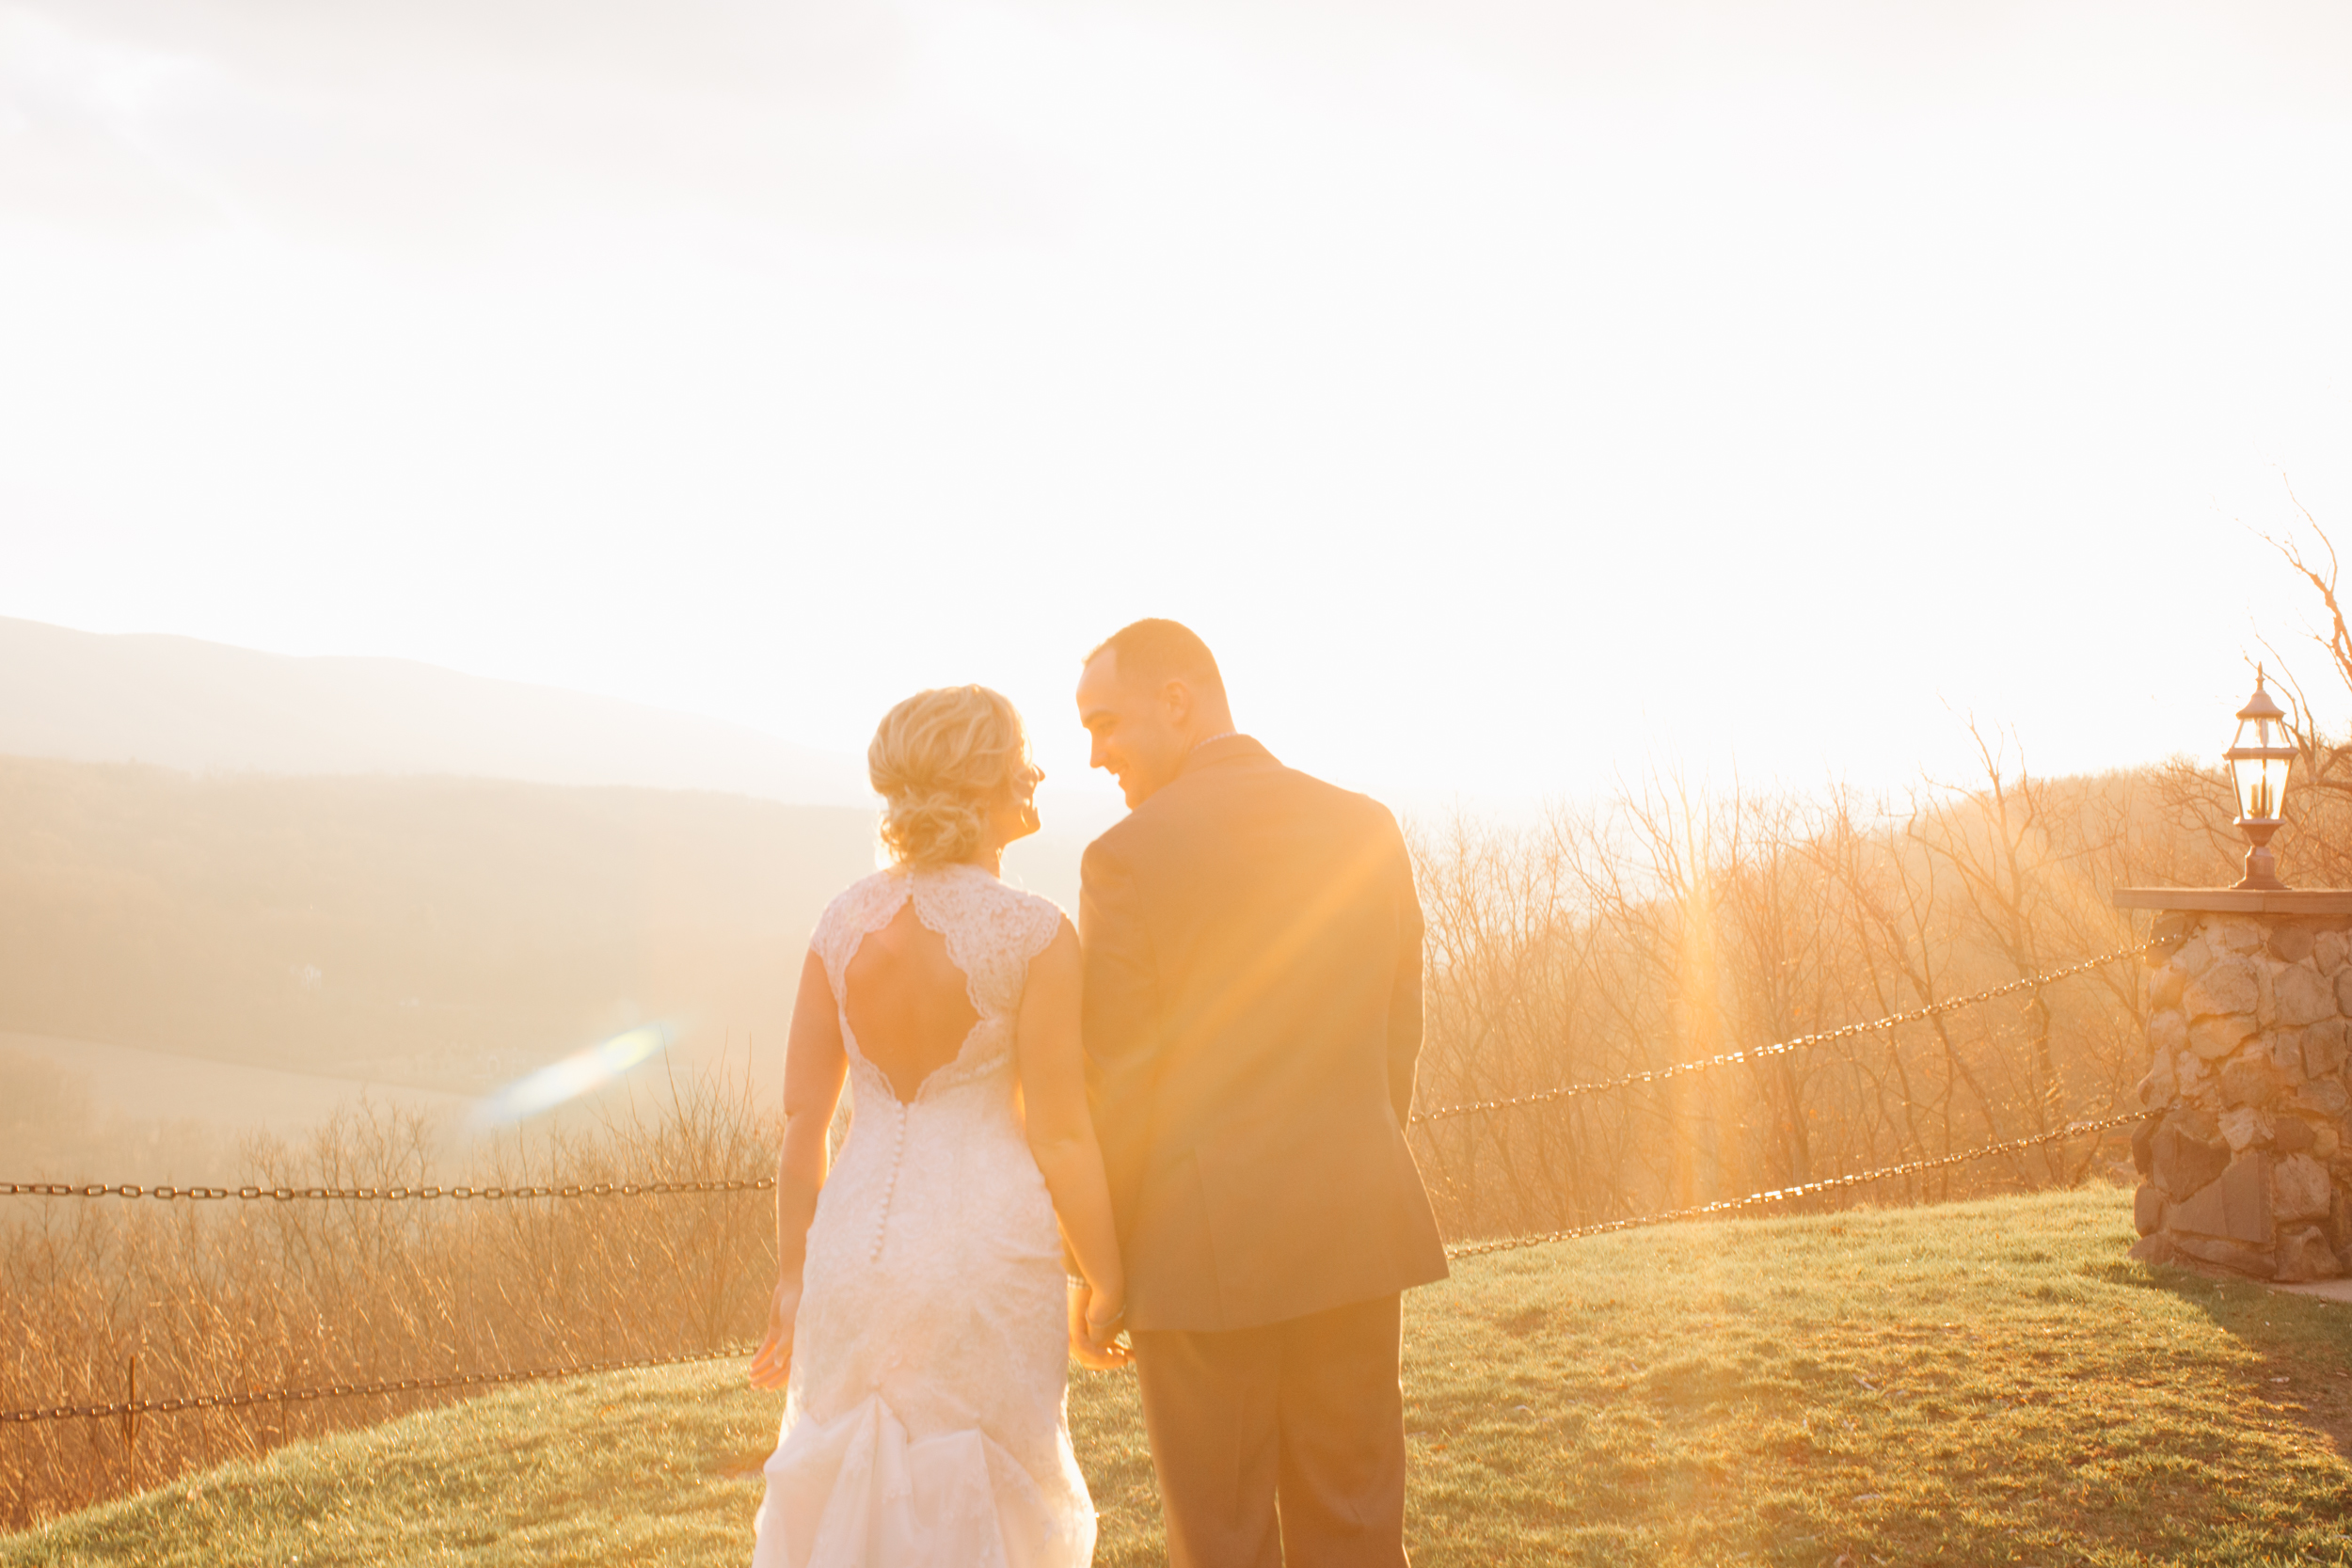 Ashley-reed-photography-pittsburgh-wedding-photographer-ashley-reed-pocconos-pa-mountain-top-wedding-100.jpg